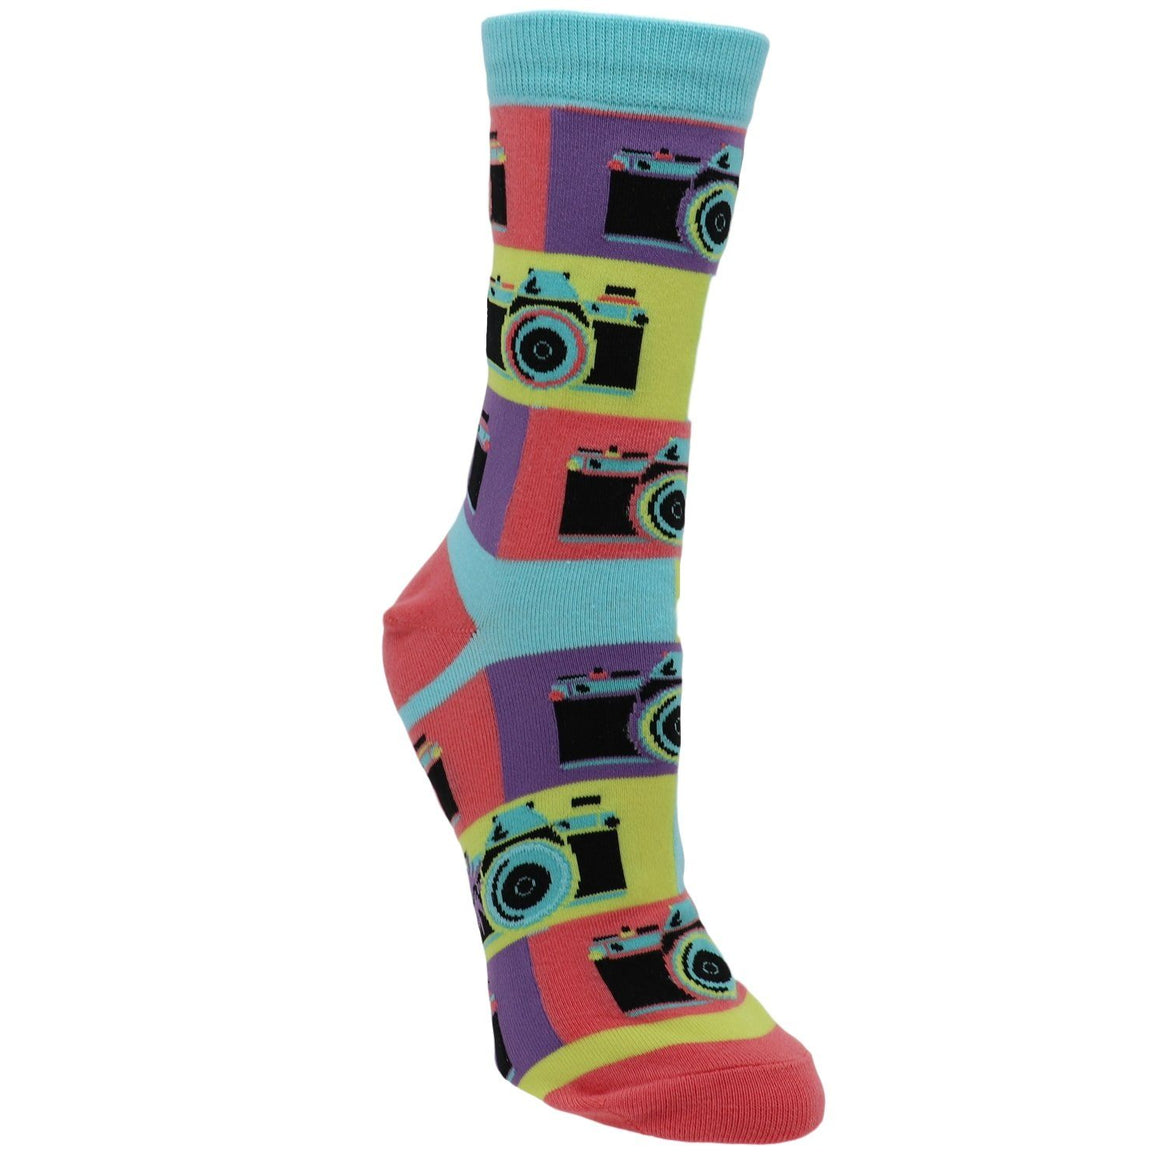 Say Cheese Women's Socks by Sock it to Me - The Sock Spot